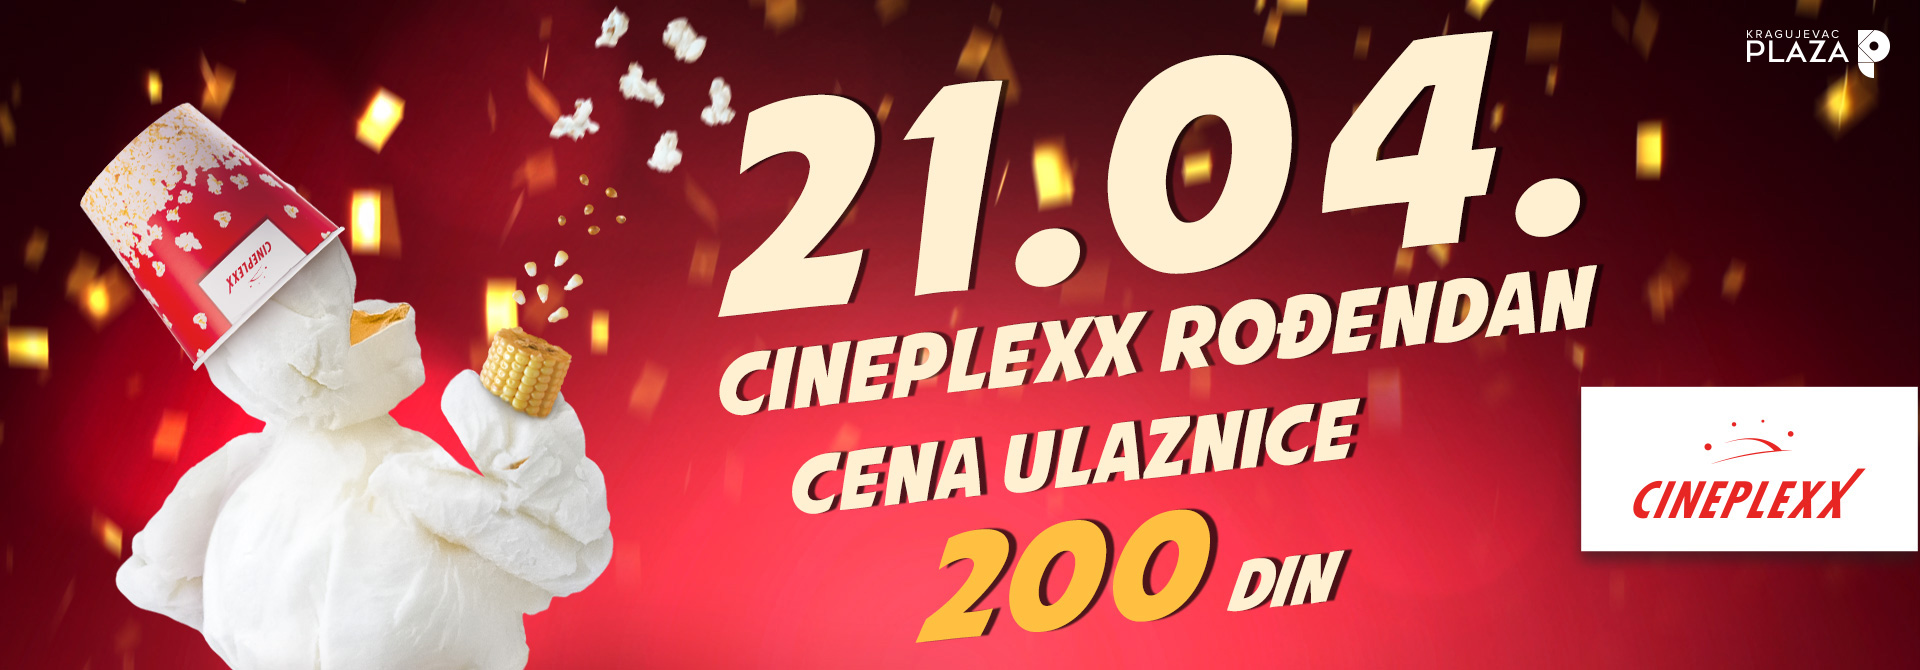 Cineplexx_Birthday_2019_1920x670_200-KGPlogo